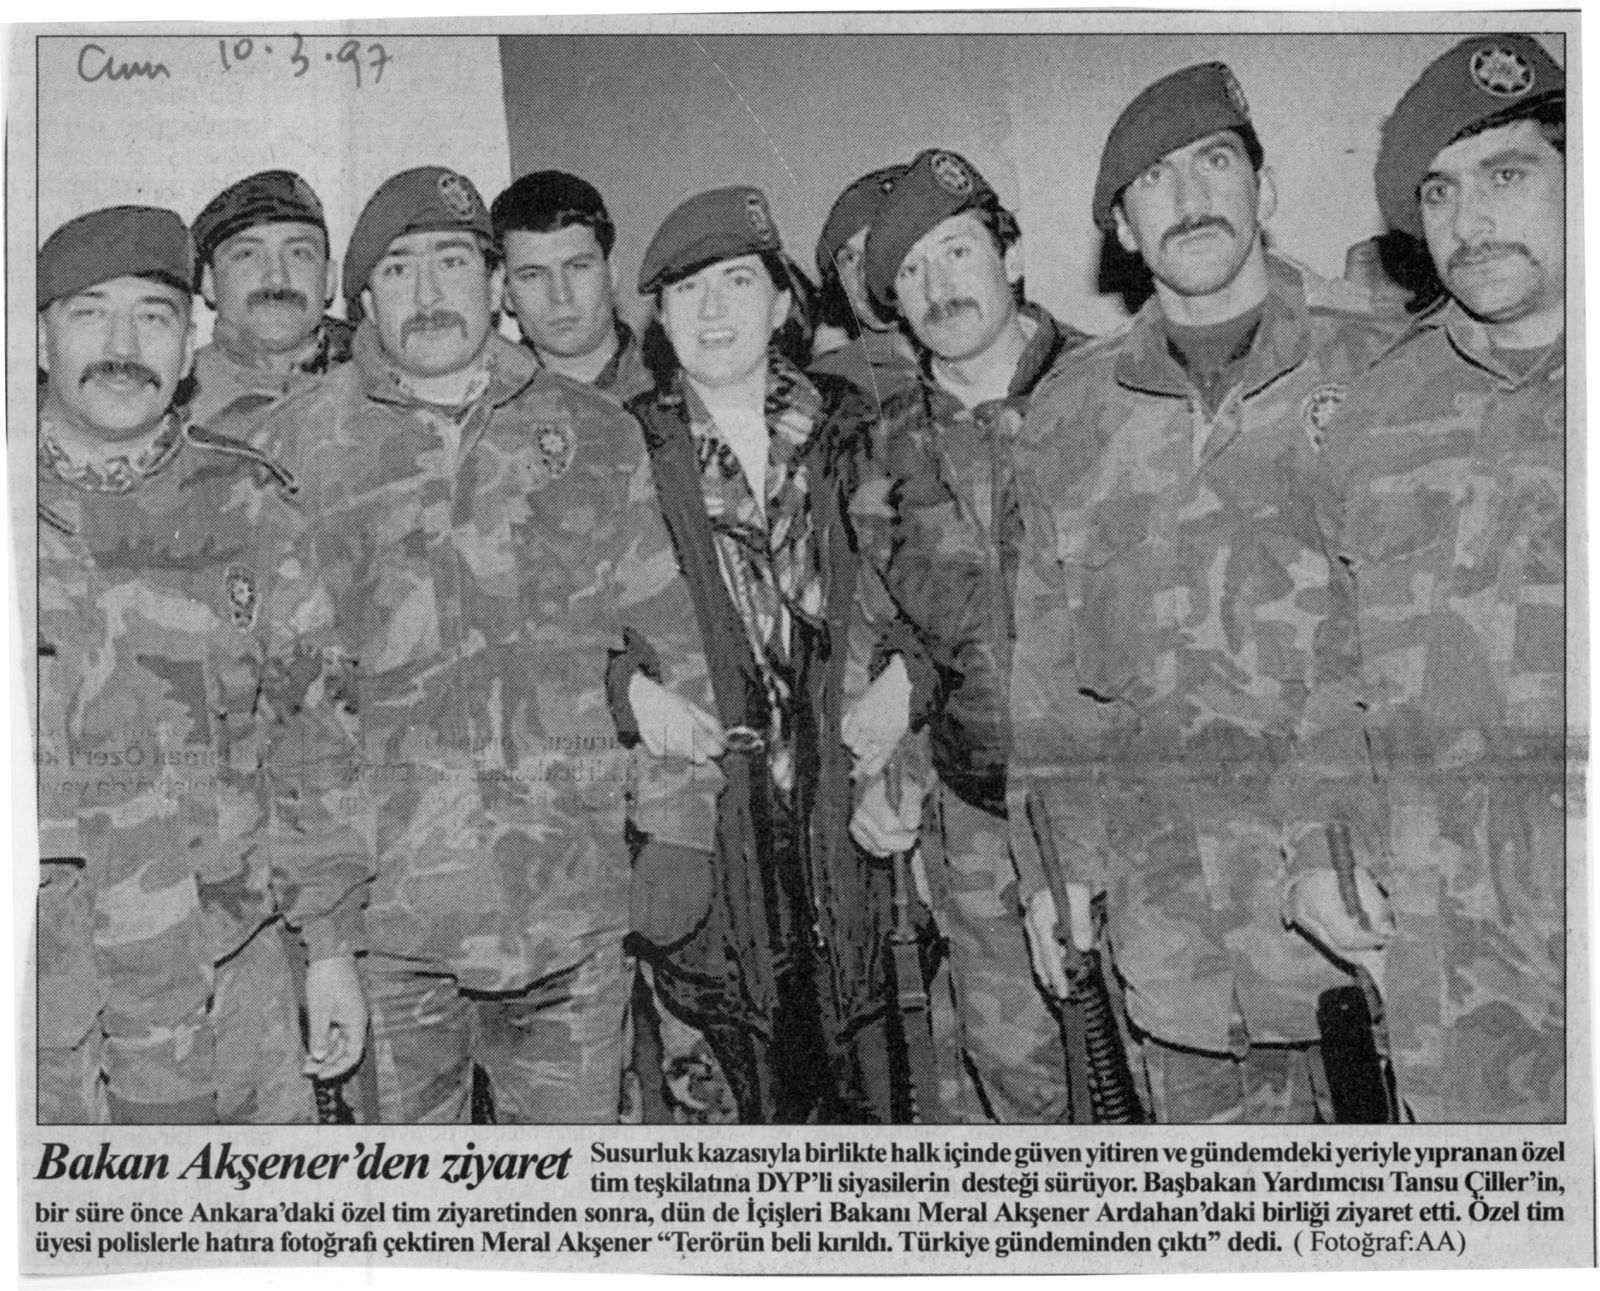 Meral Aksener among members of the special forces. Photo Anadolu Ajansı published in Cumhuriyet, March 10, 1997